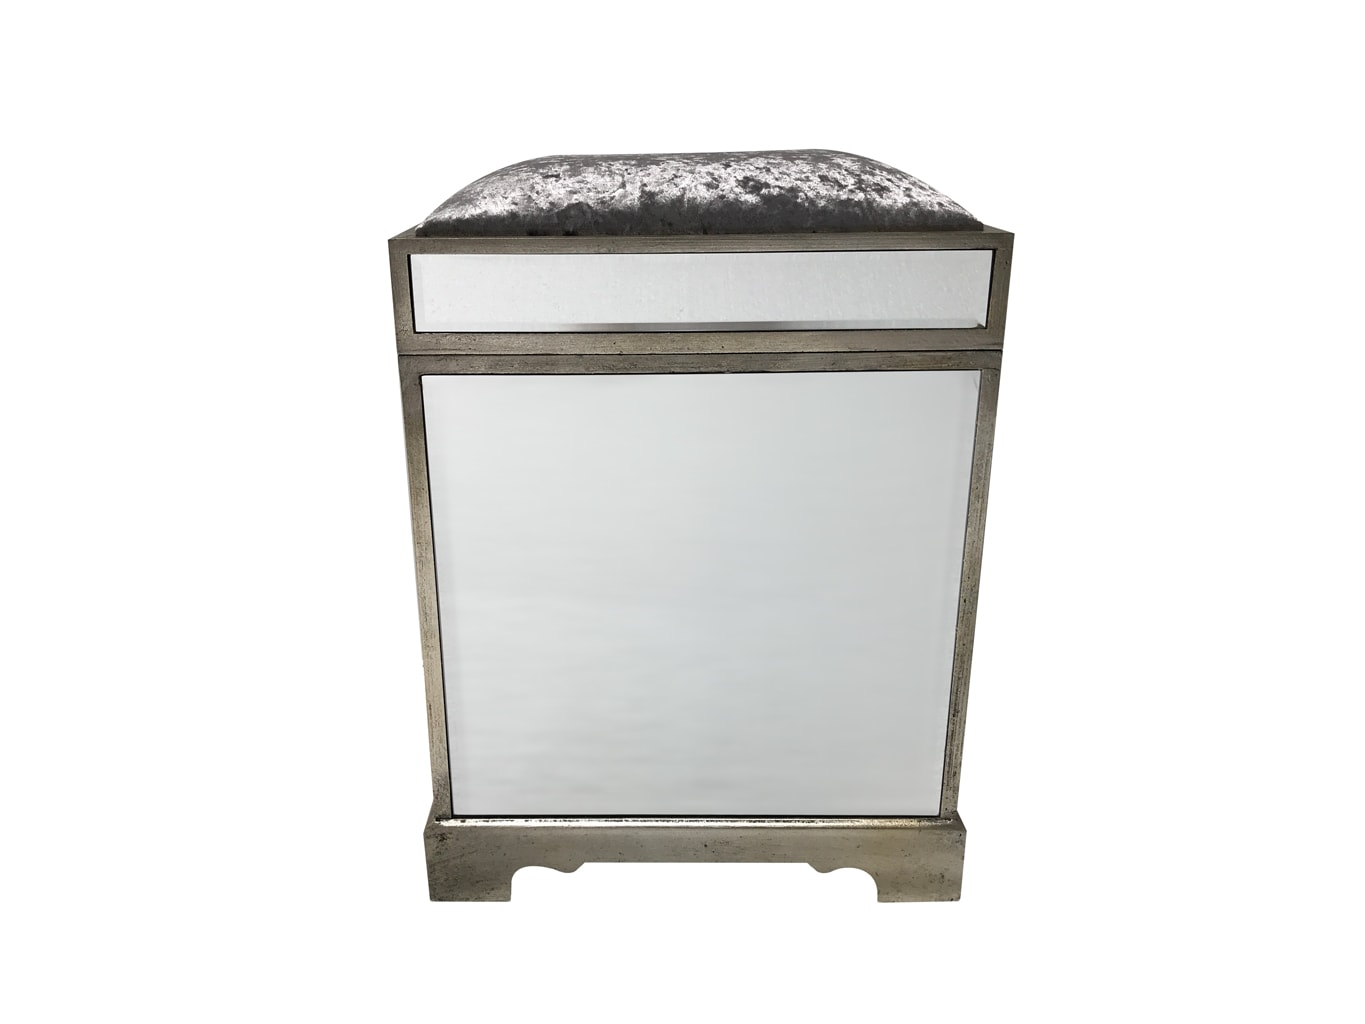 Hollywood mirrored stool / trunk, silver velvet upholstery, wood and mirror and cloth, antiqued silver